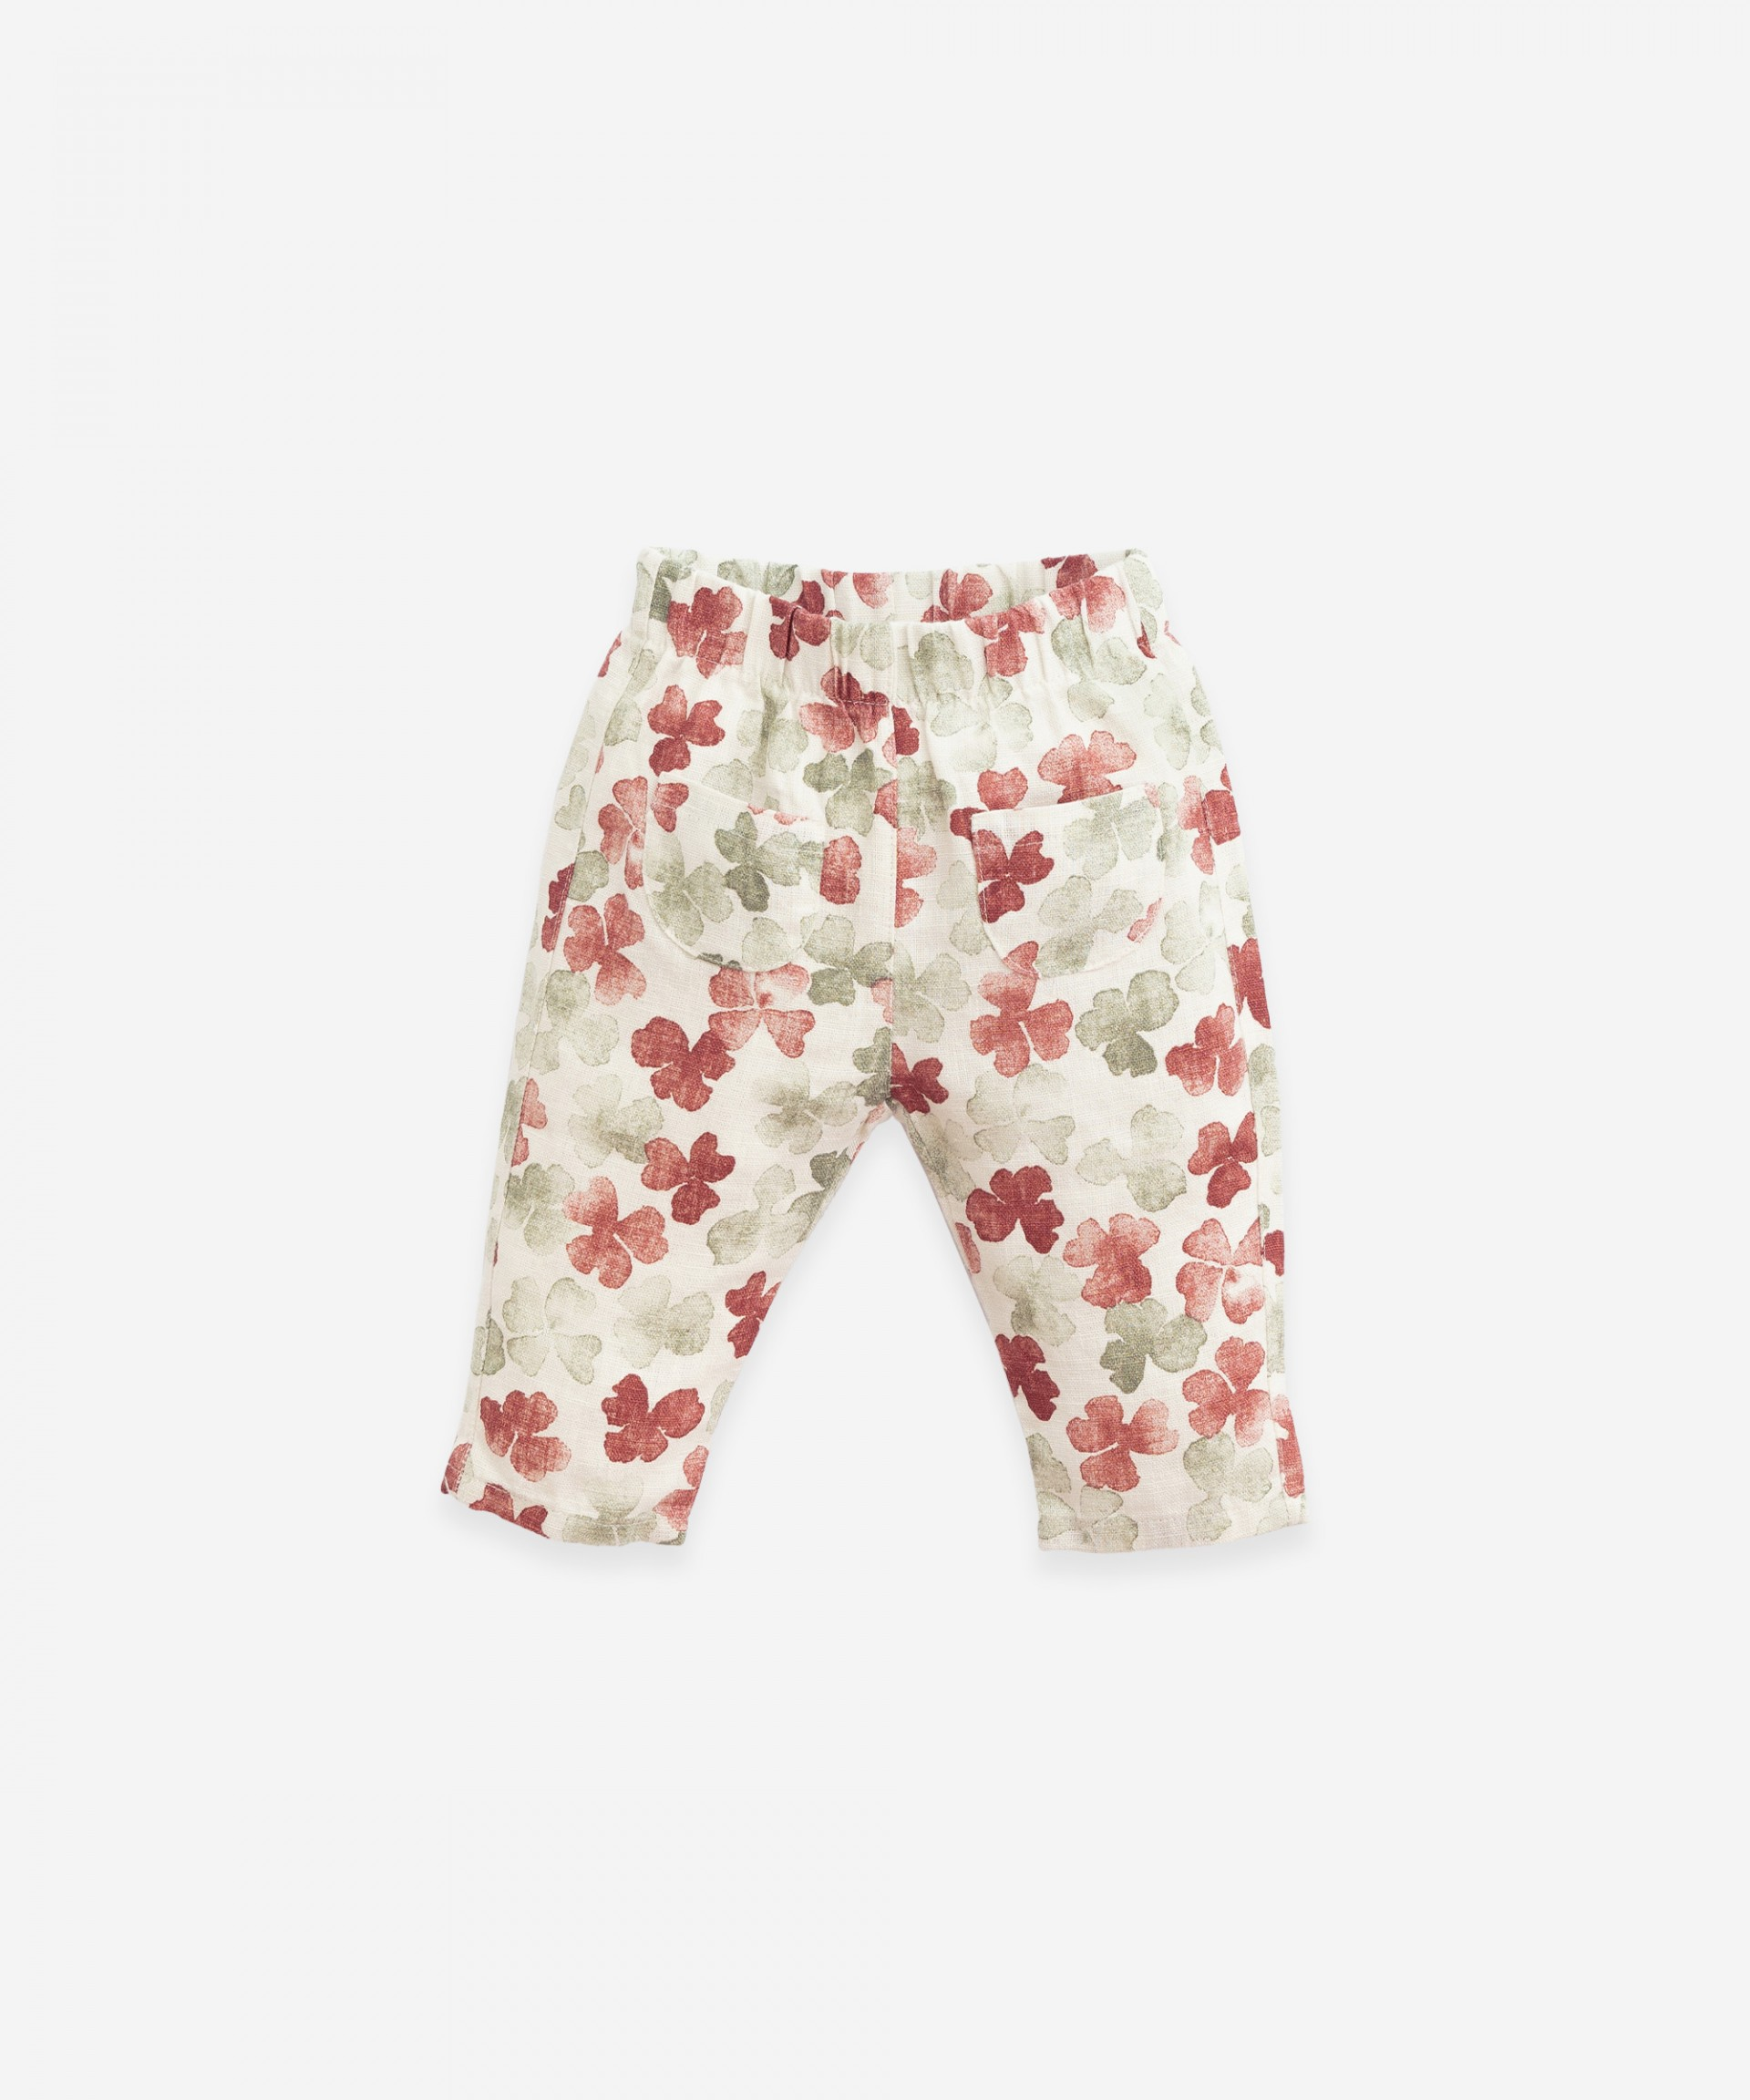 Linen trousers with front pocket | Botany